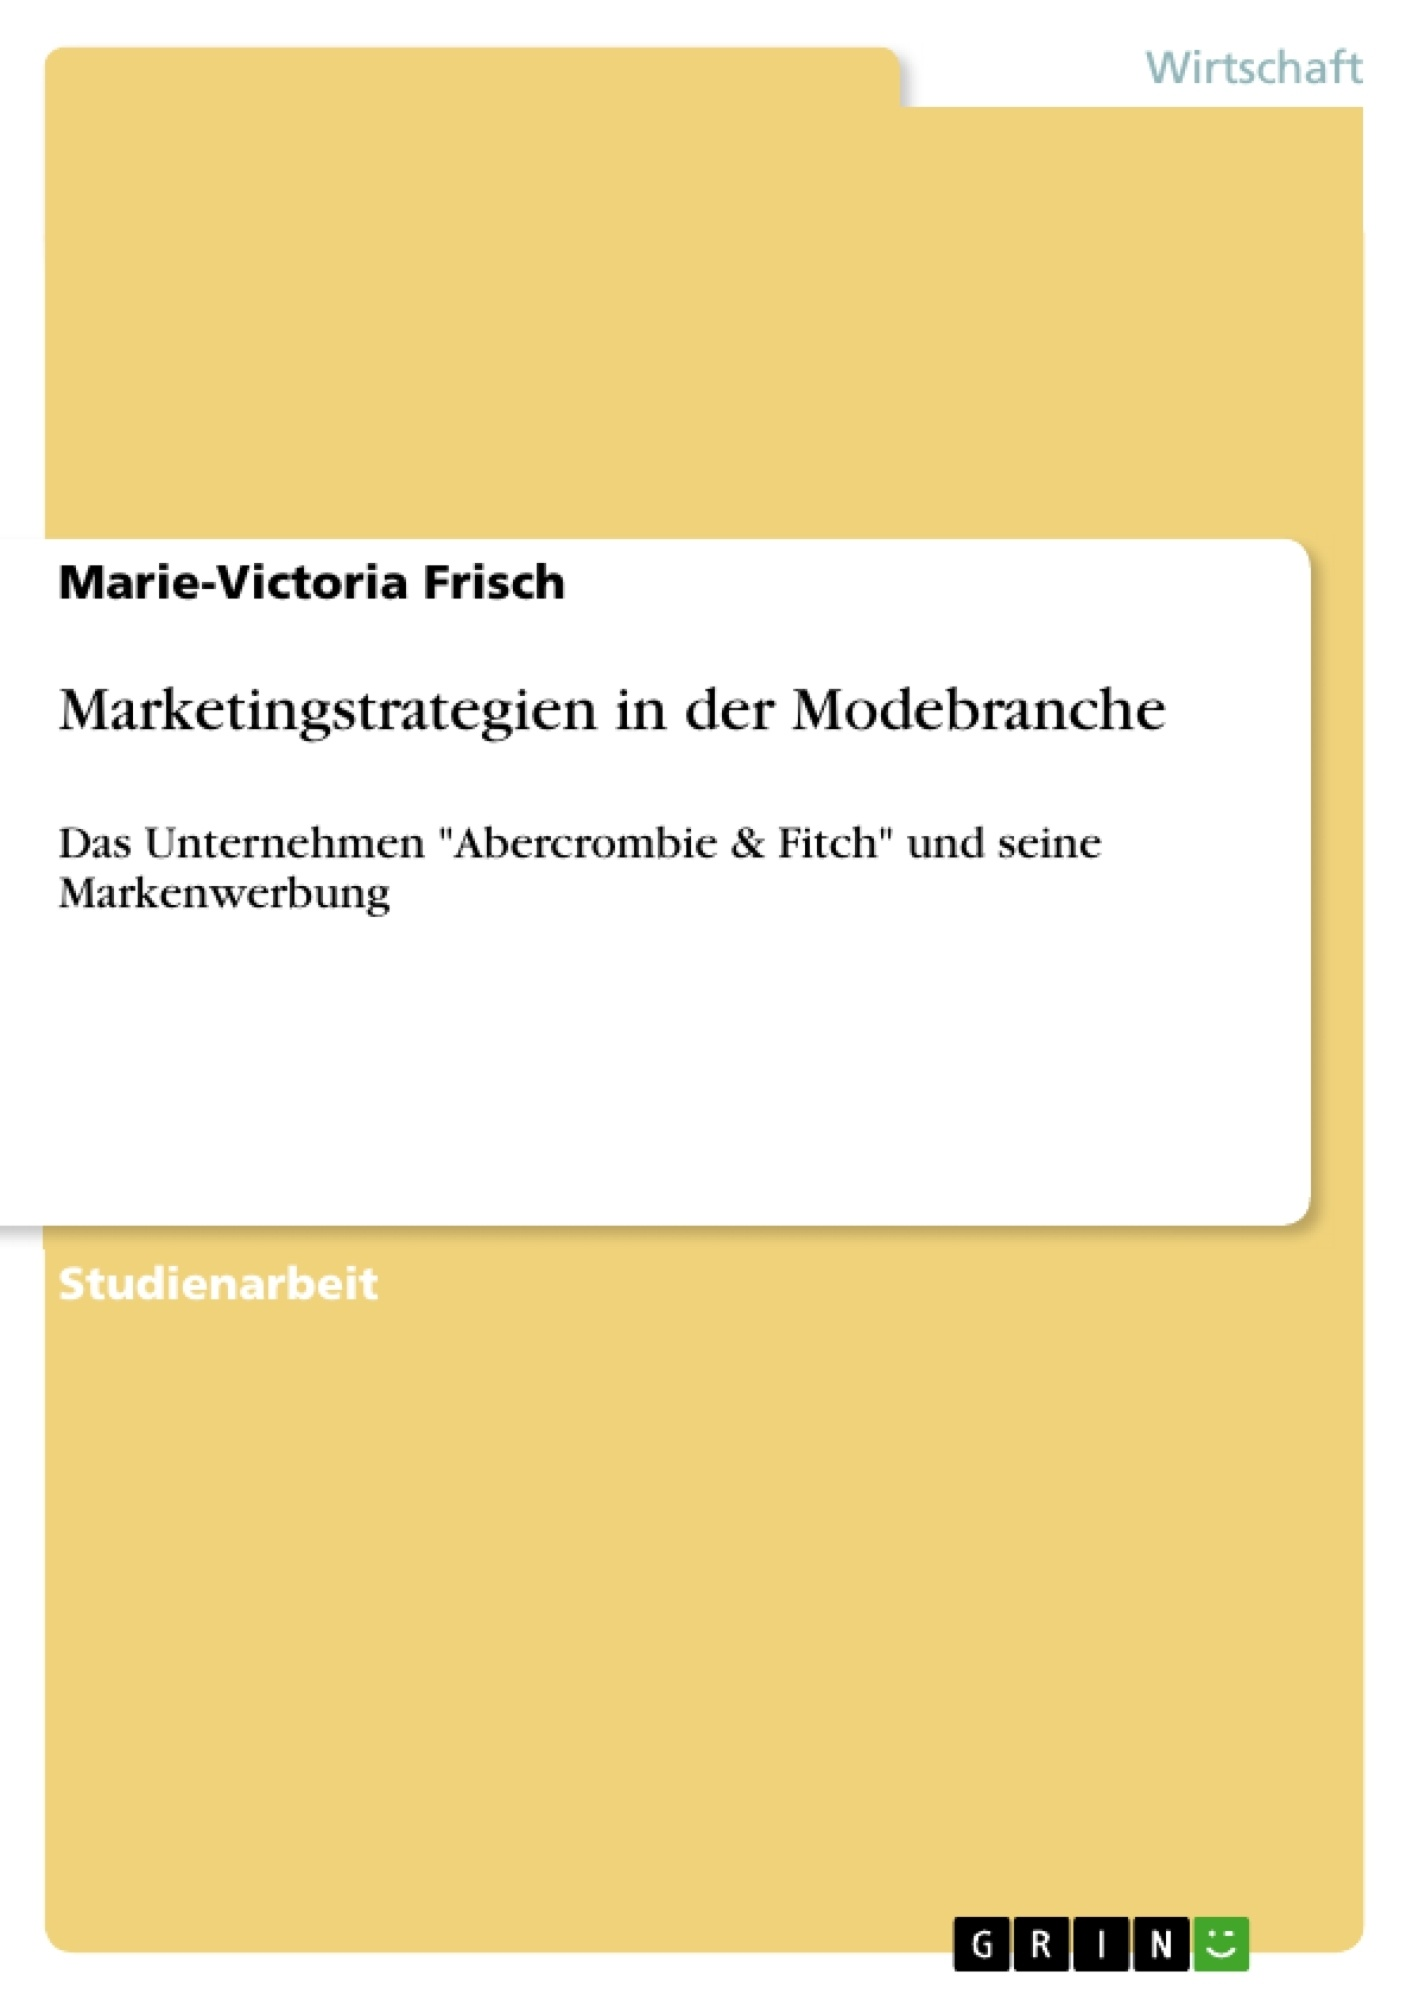 Titel: Marketingstrategien in der Modebranche